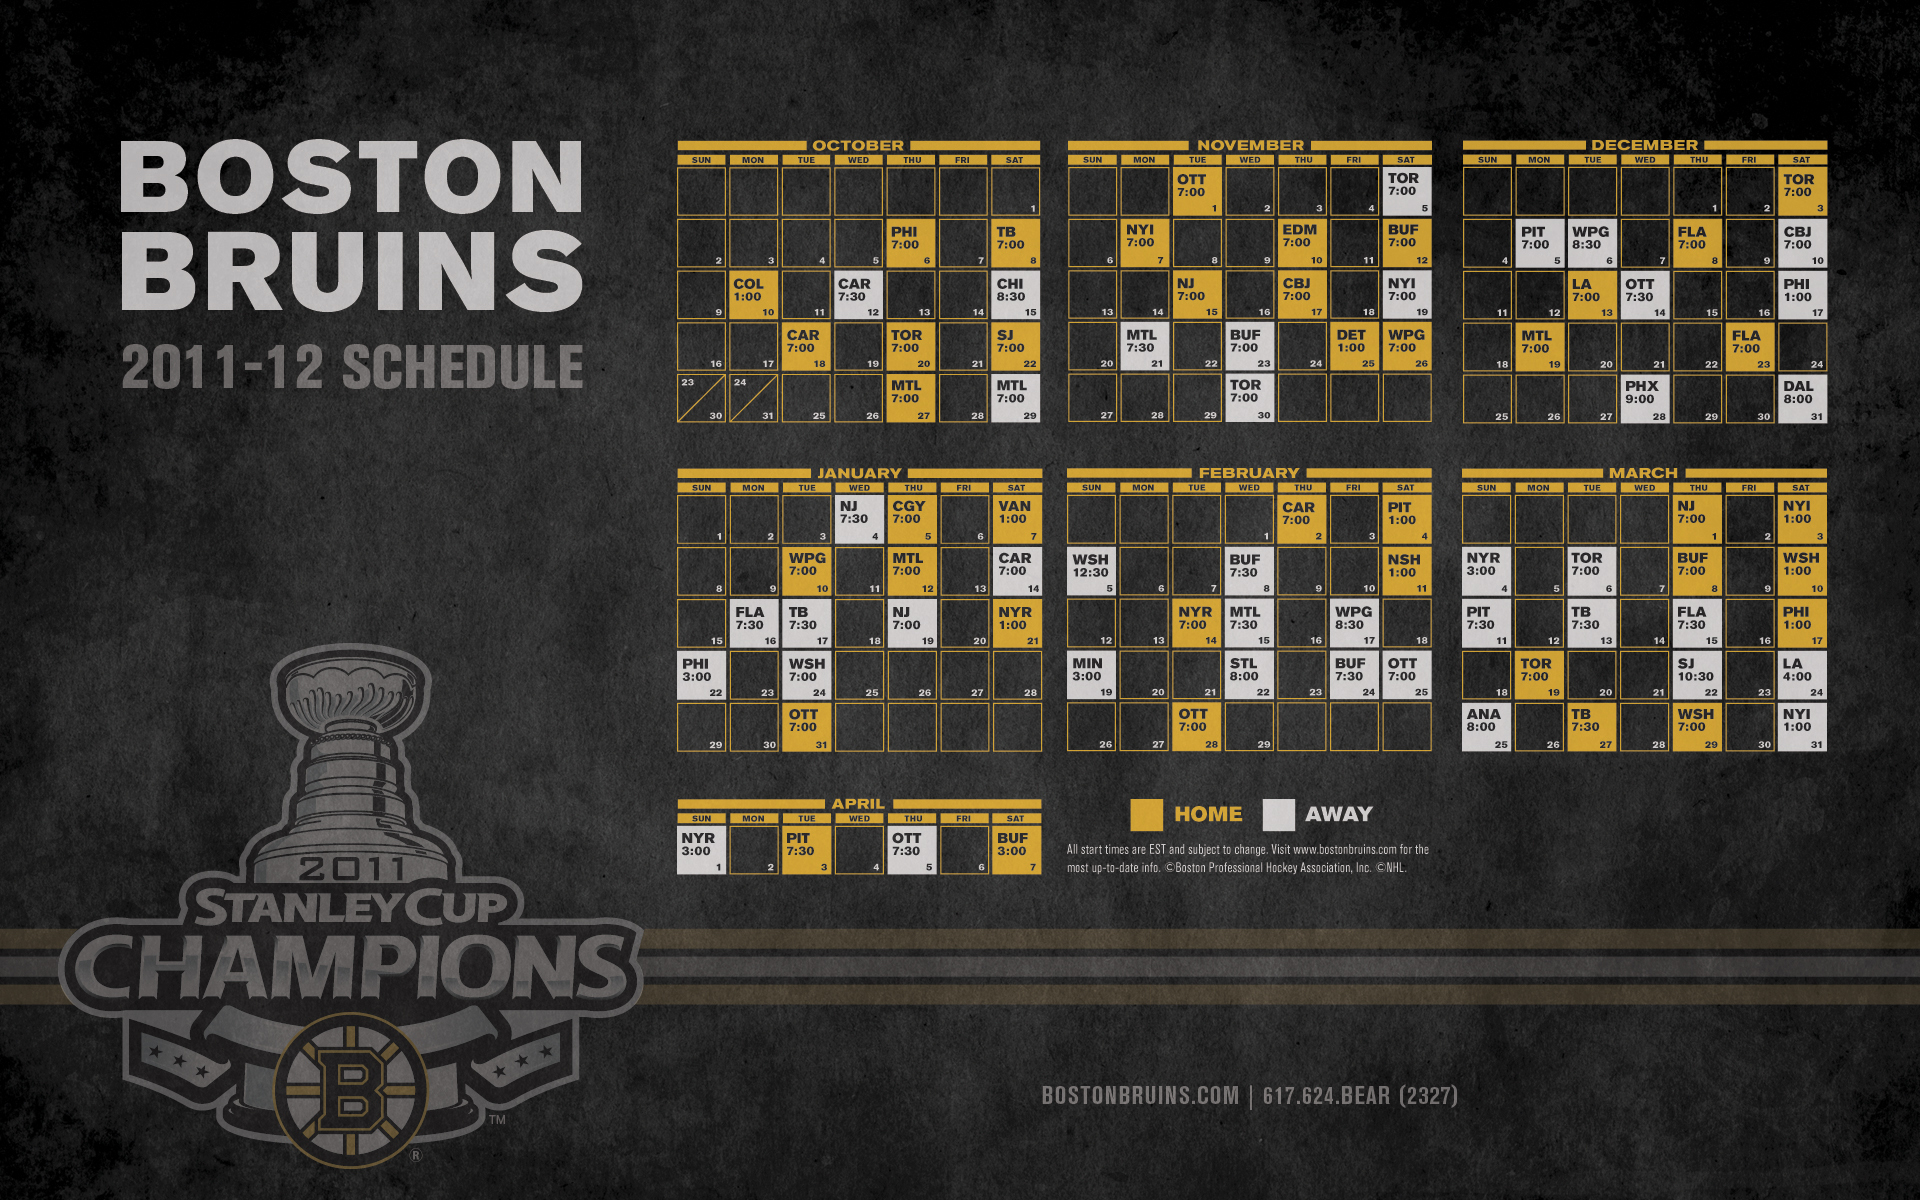 Boston Bruins images Bruins 201112 Schedule HD wallpaper and